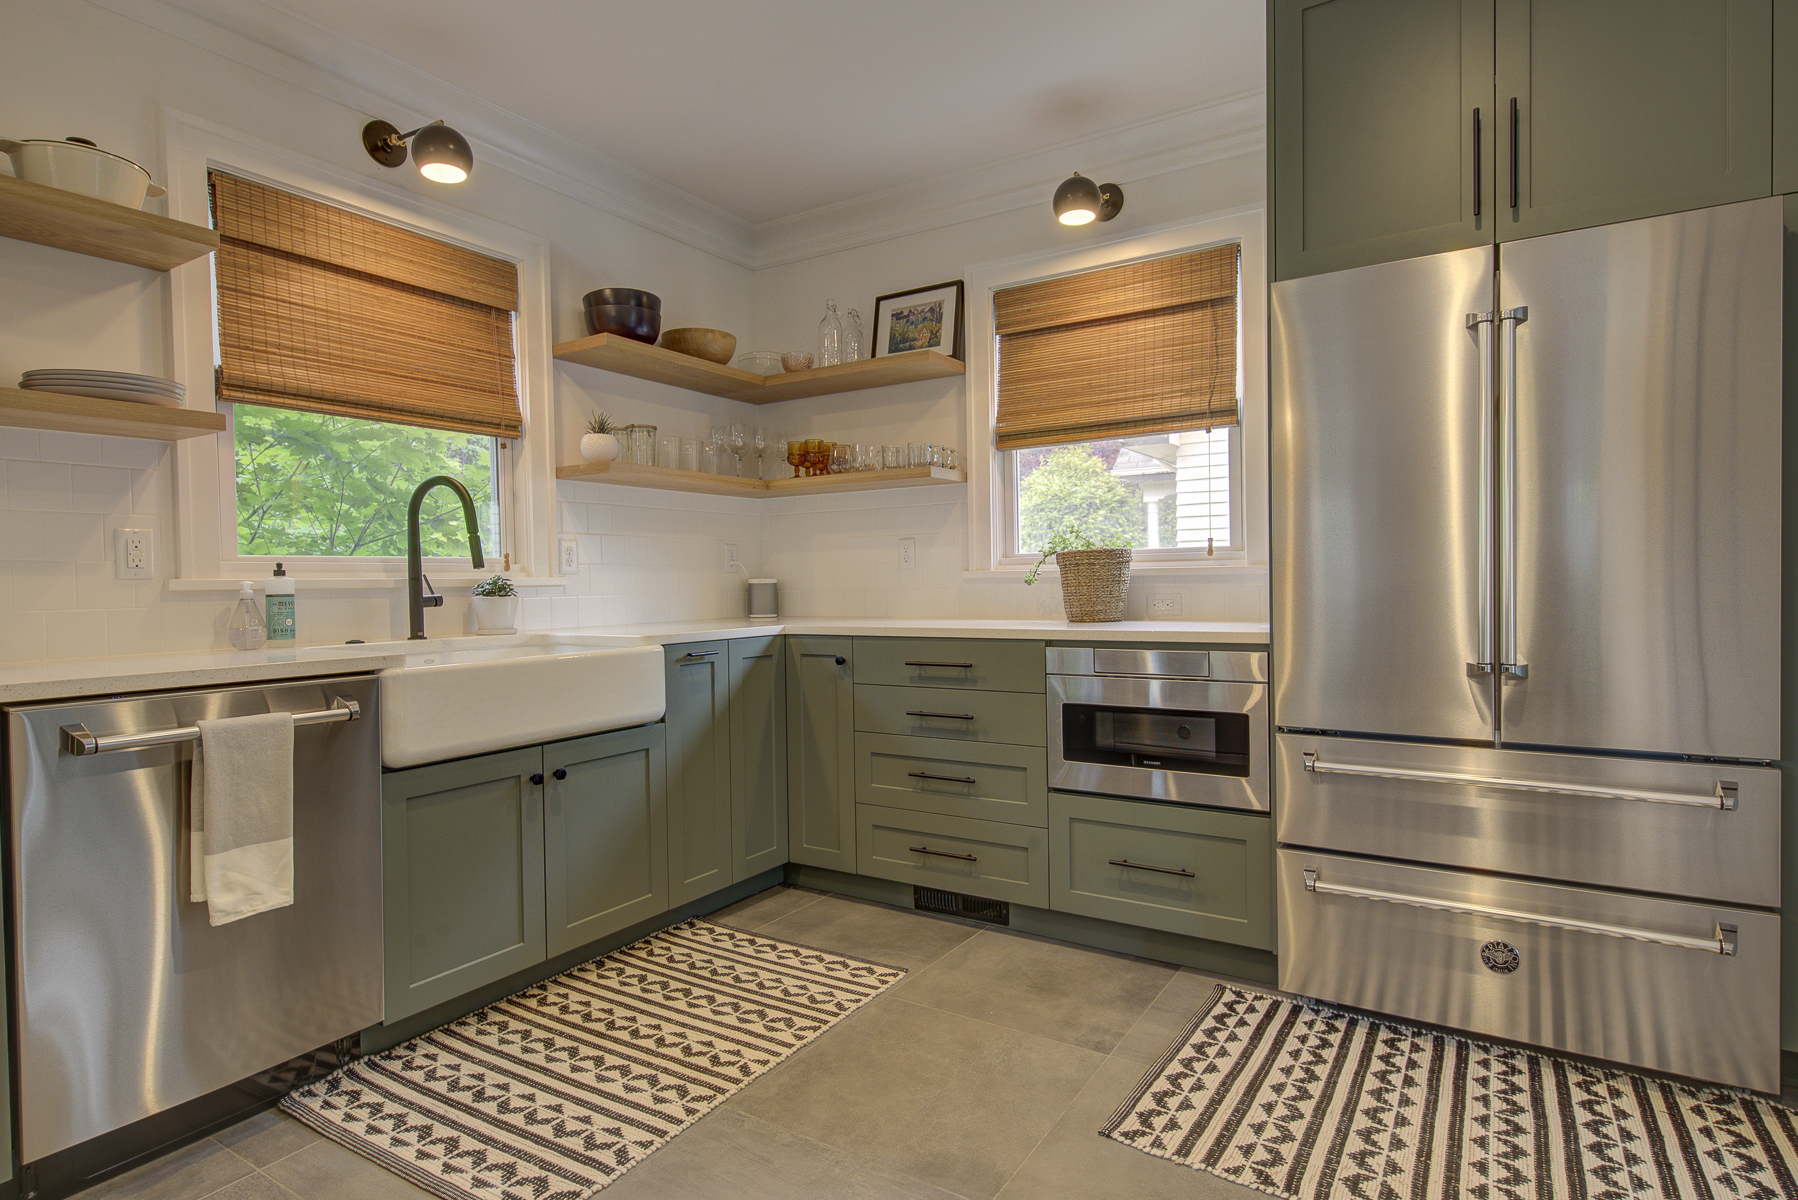 Harka Architecture Rose City Park Kitchen Remodel